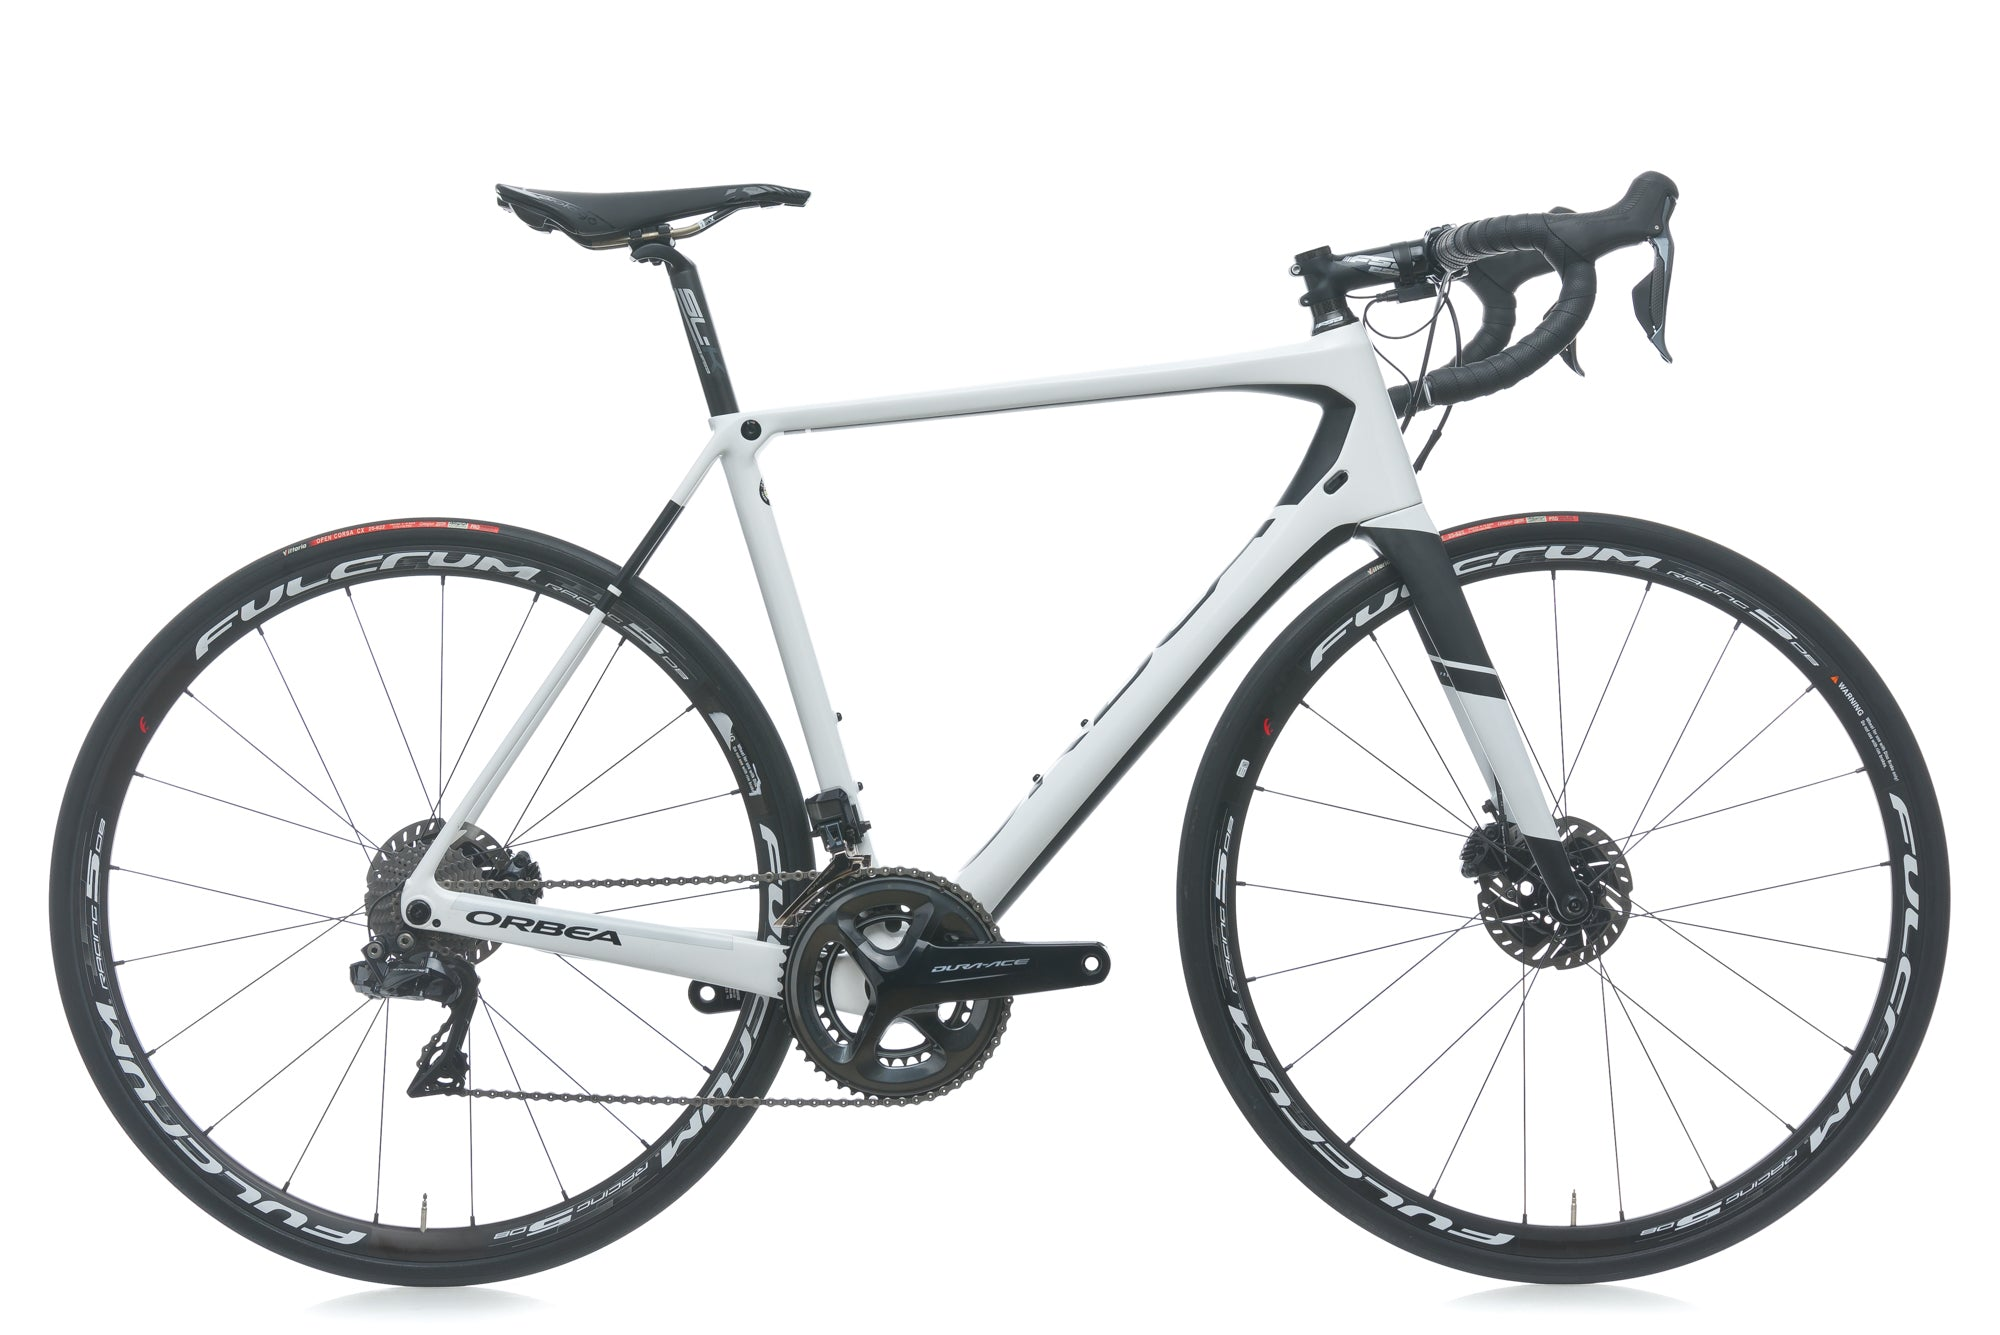 Orbea Orca M10iTEAM-D 55cm Bike - 2017 drive side